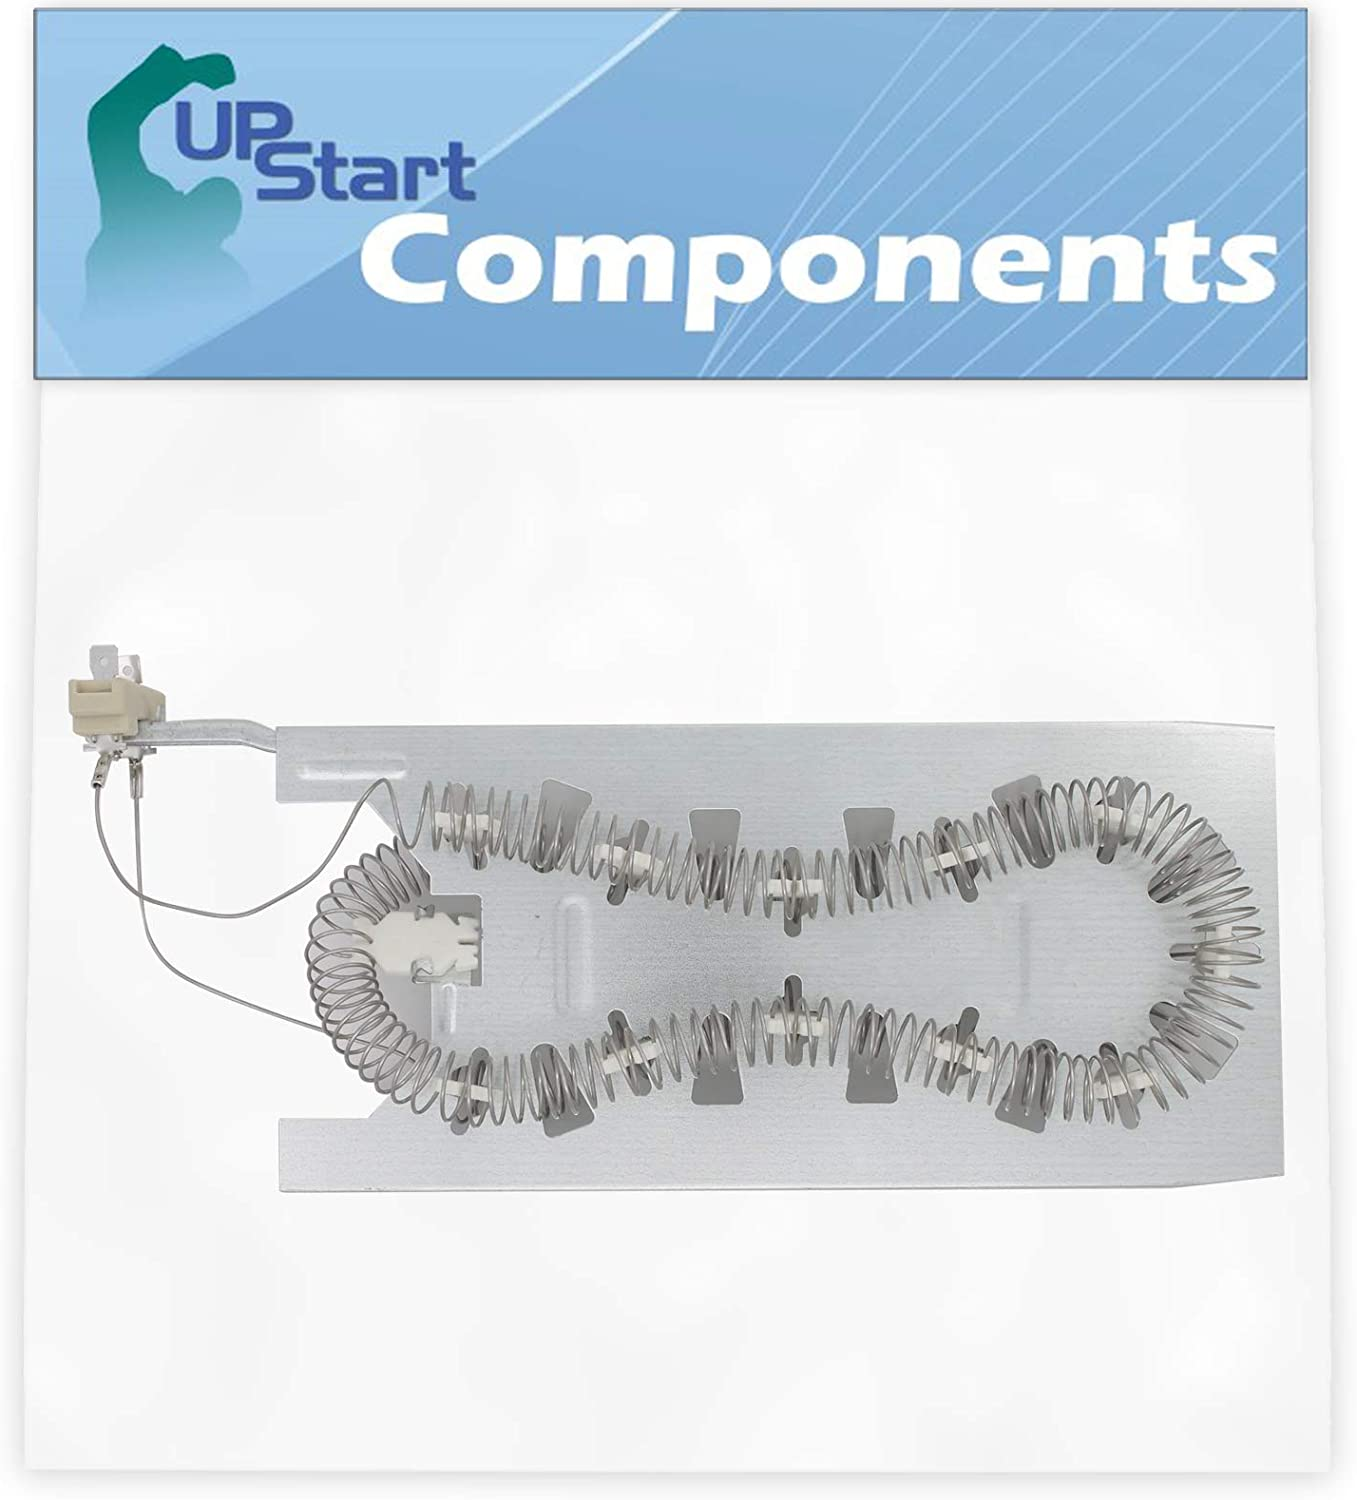 3387747 Dryer Heating Element Replacement for Kenmore/Sears 11064872401 Dryer - Compatible with 3387747 Heater Element - UpStart Components Brand